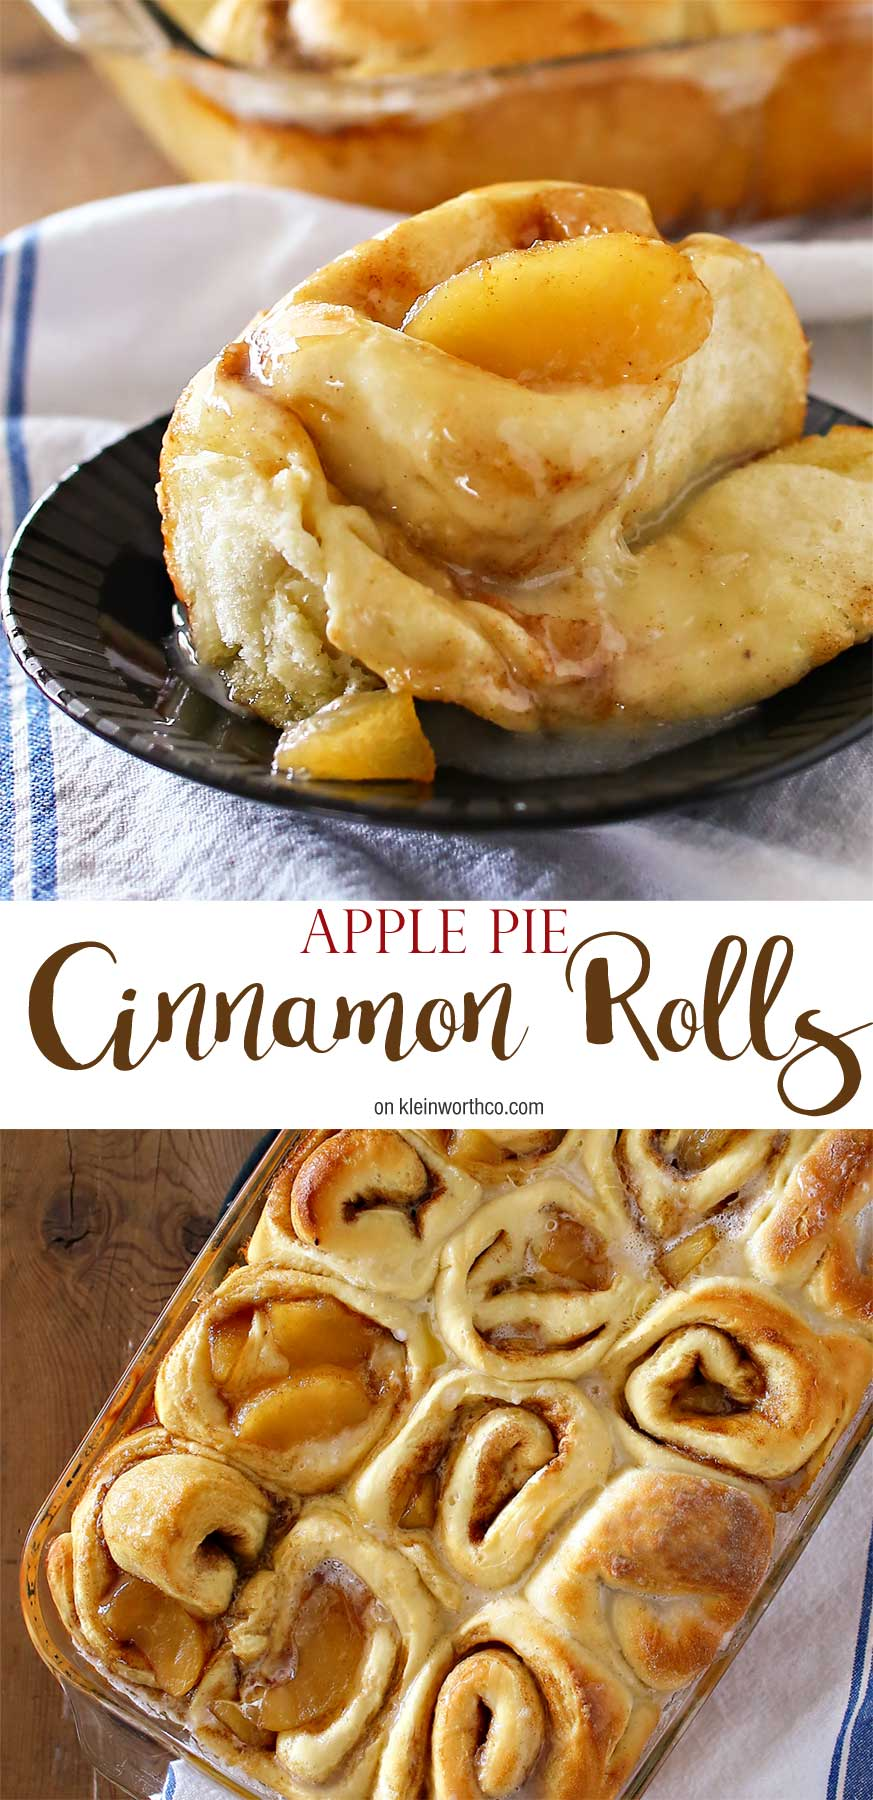 The absolute best Apple Pie Cinnamon Rolls